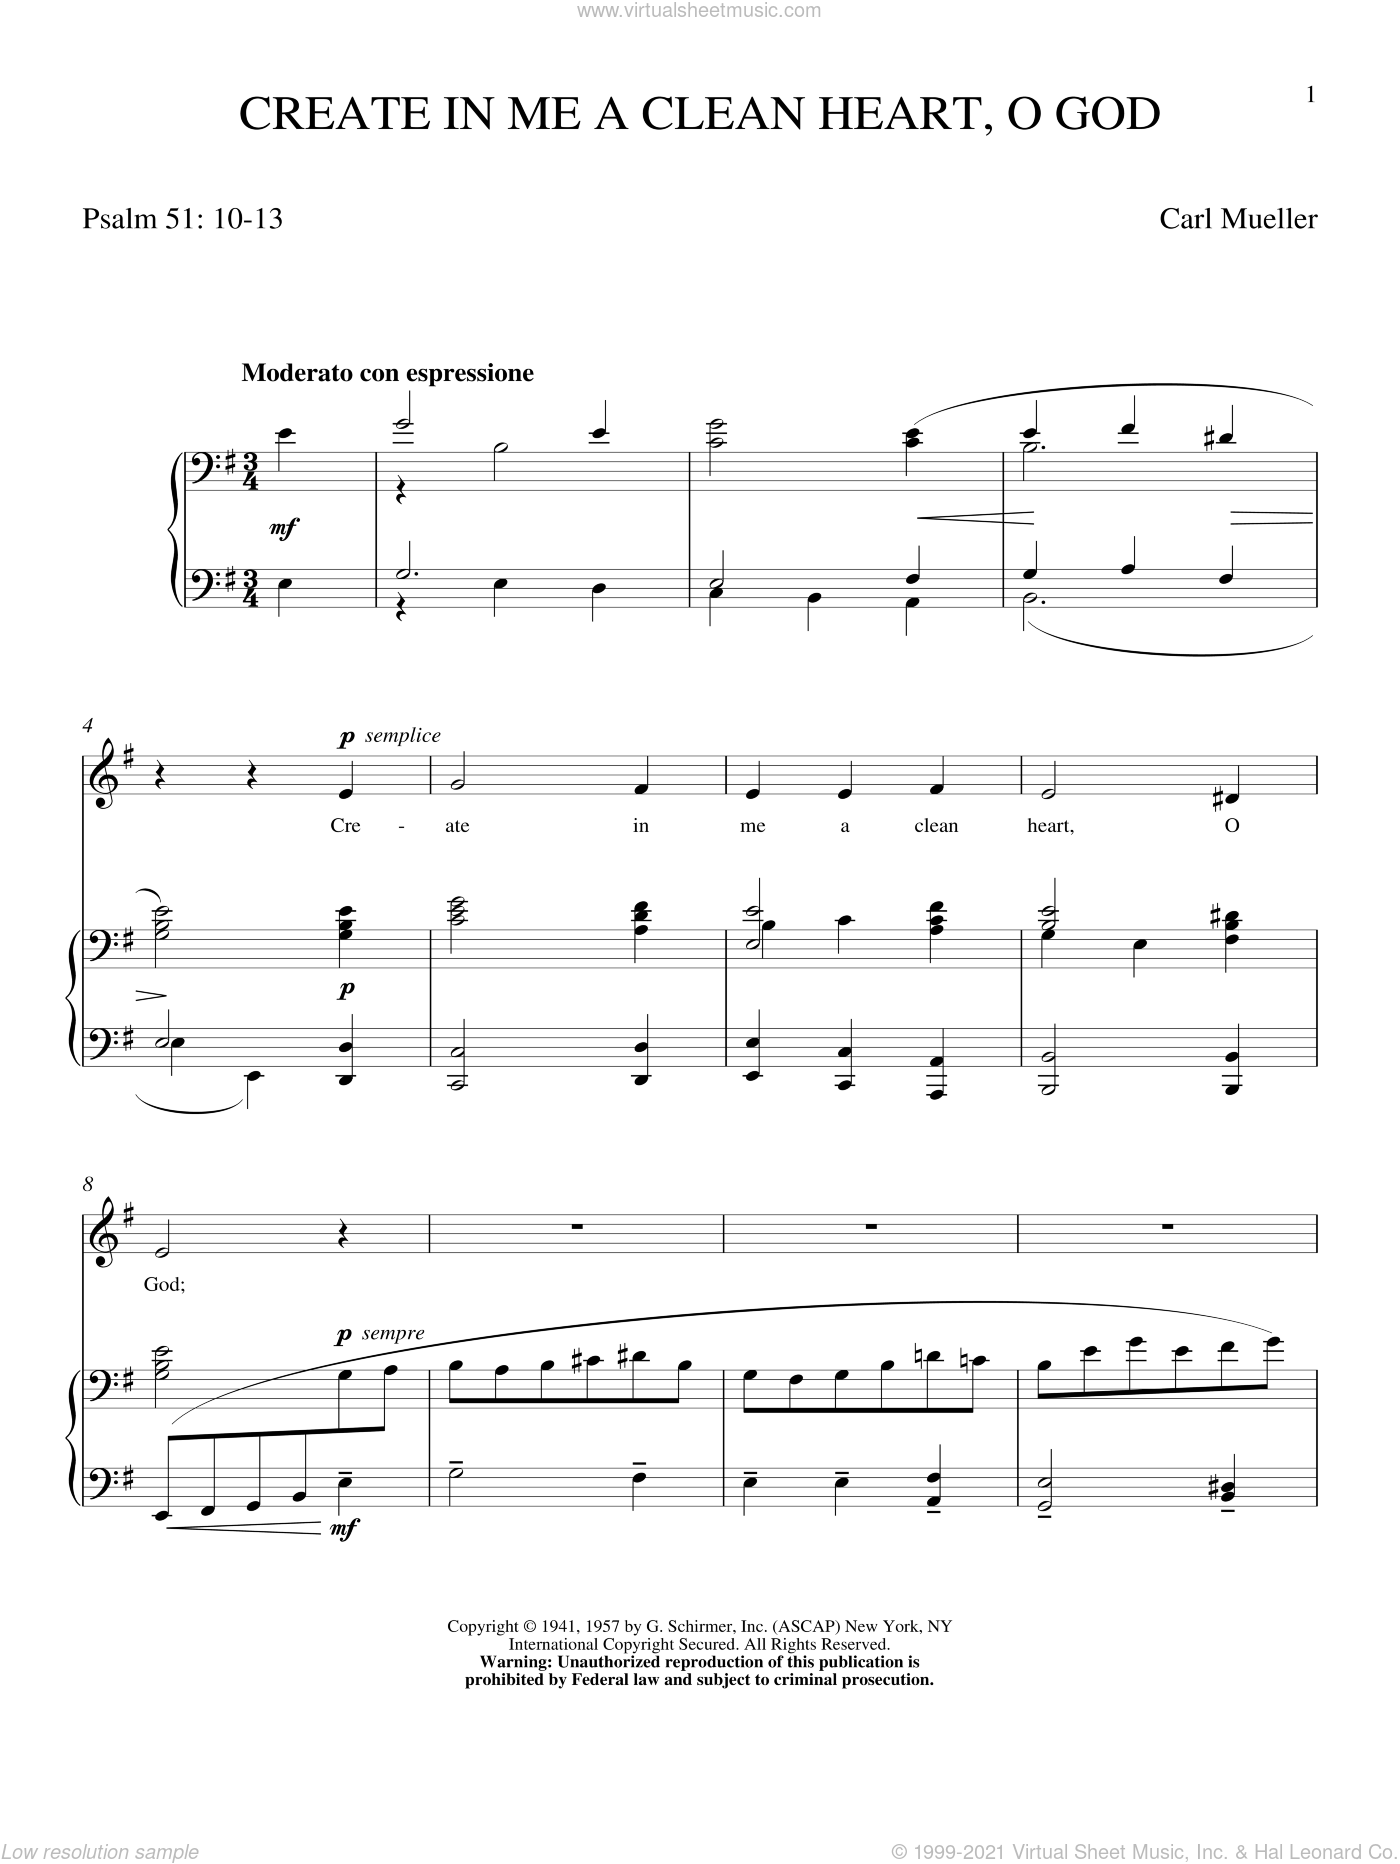 Create In Me A Clean Heart, O God sheet music for voice and piano (High ) by Carl Mueller and Keith Green. Score Image Preview.